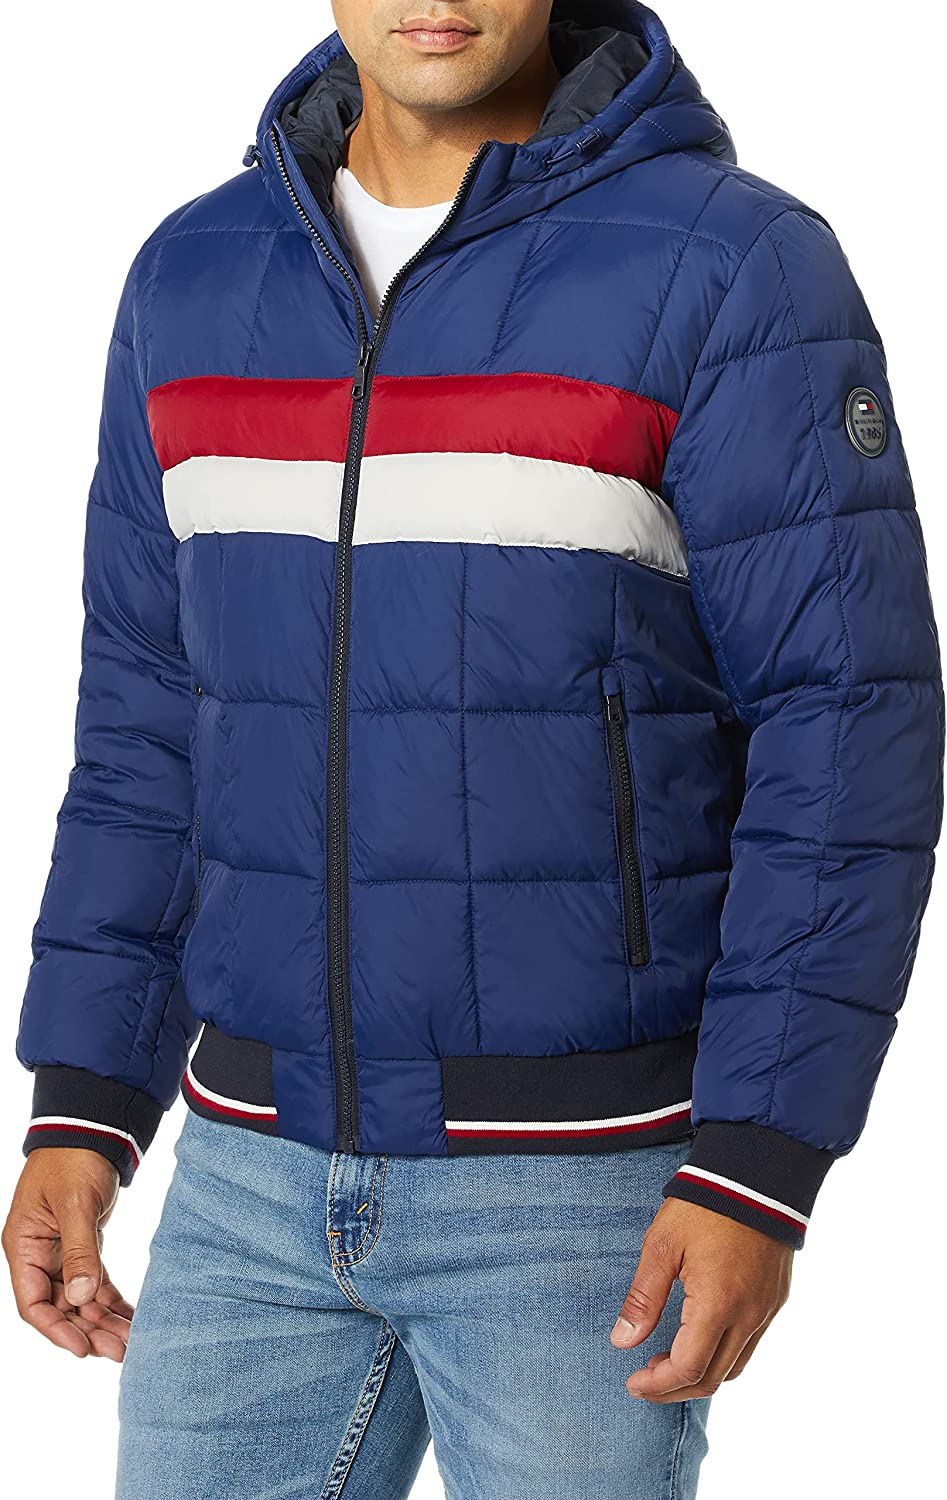 Tommy Hilfiger San Jose Mall Max 56% OFF Men's Quilted Colorblock Jack Bomber Hoody Puffer